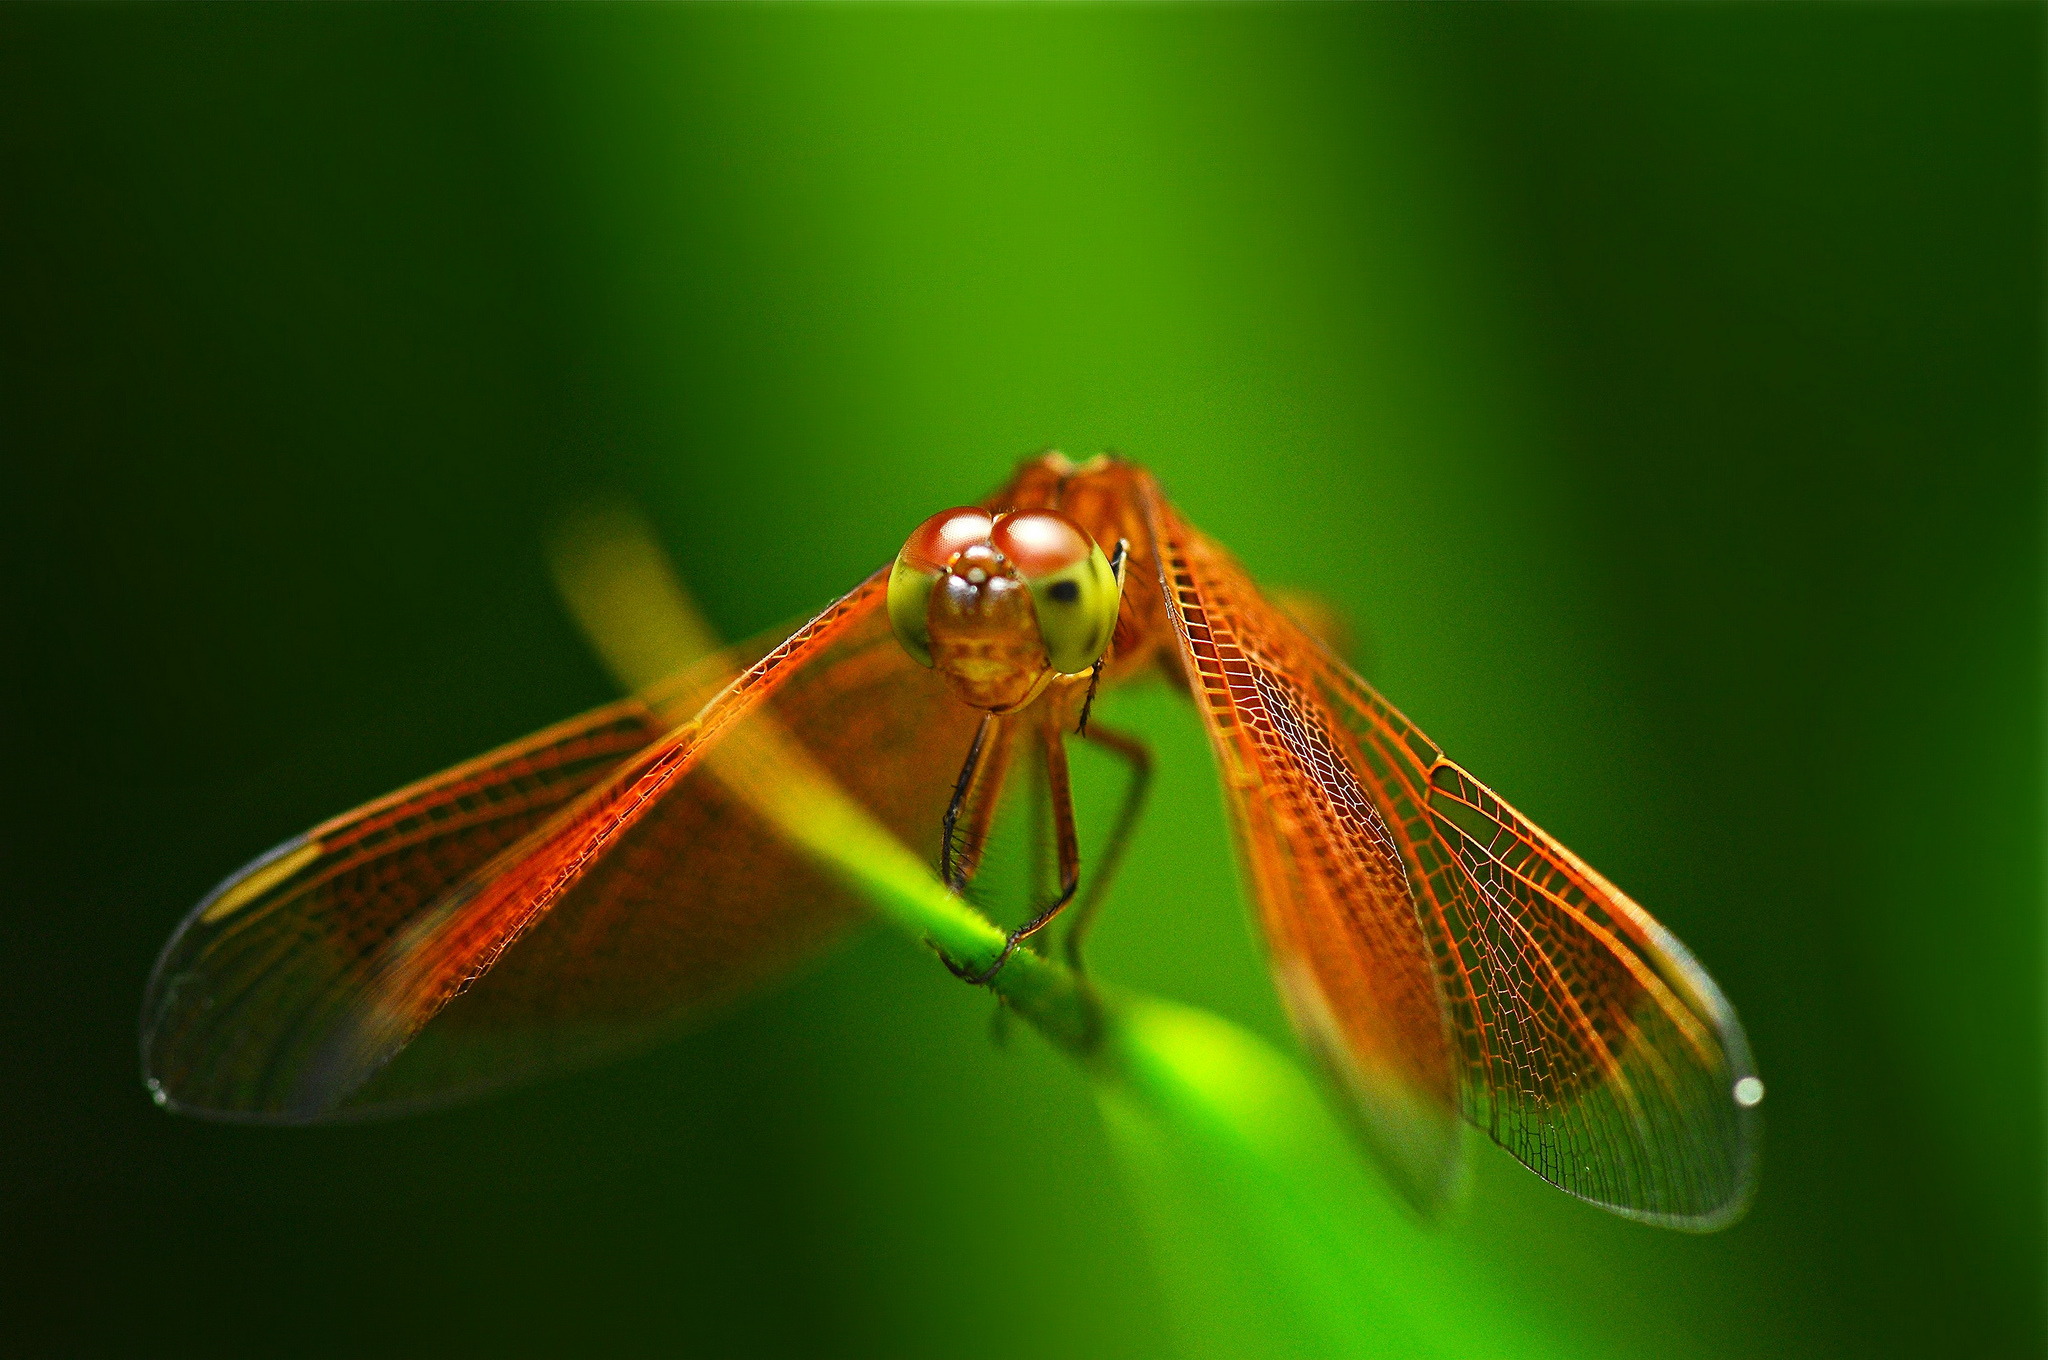 dragonfly wallpaper iphone 6